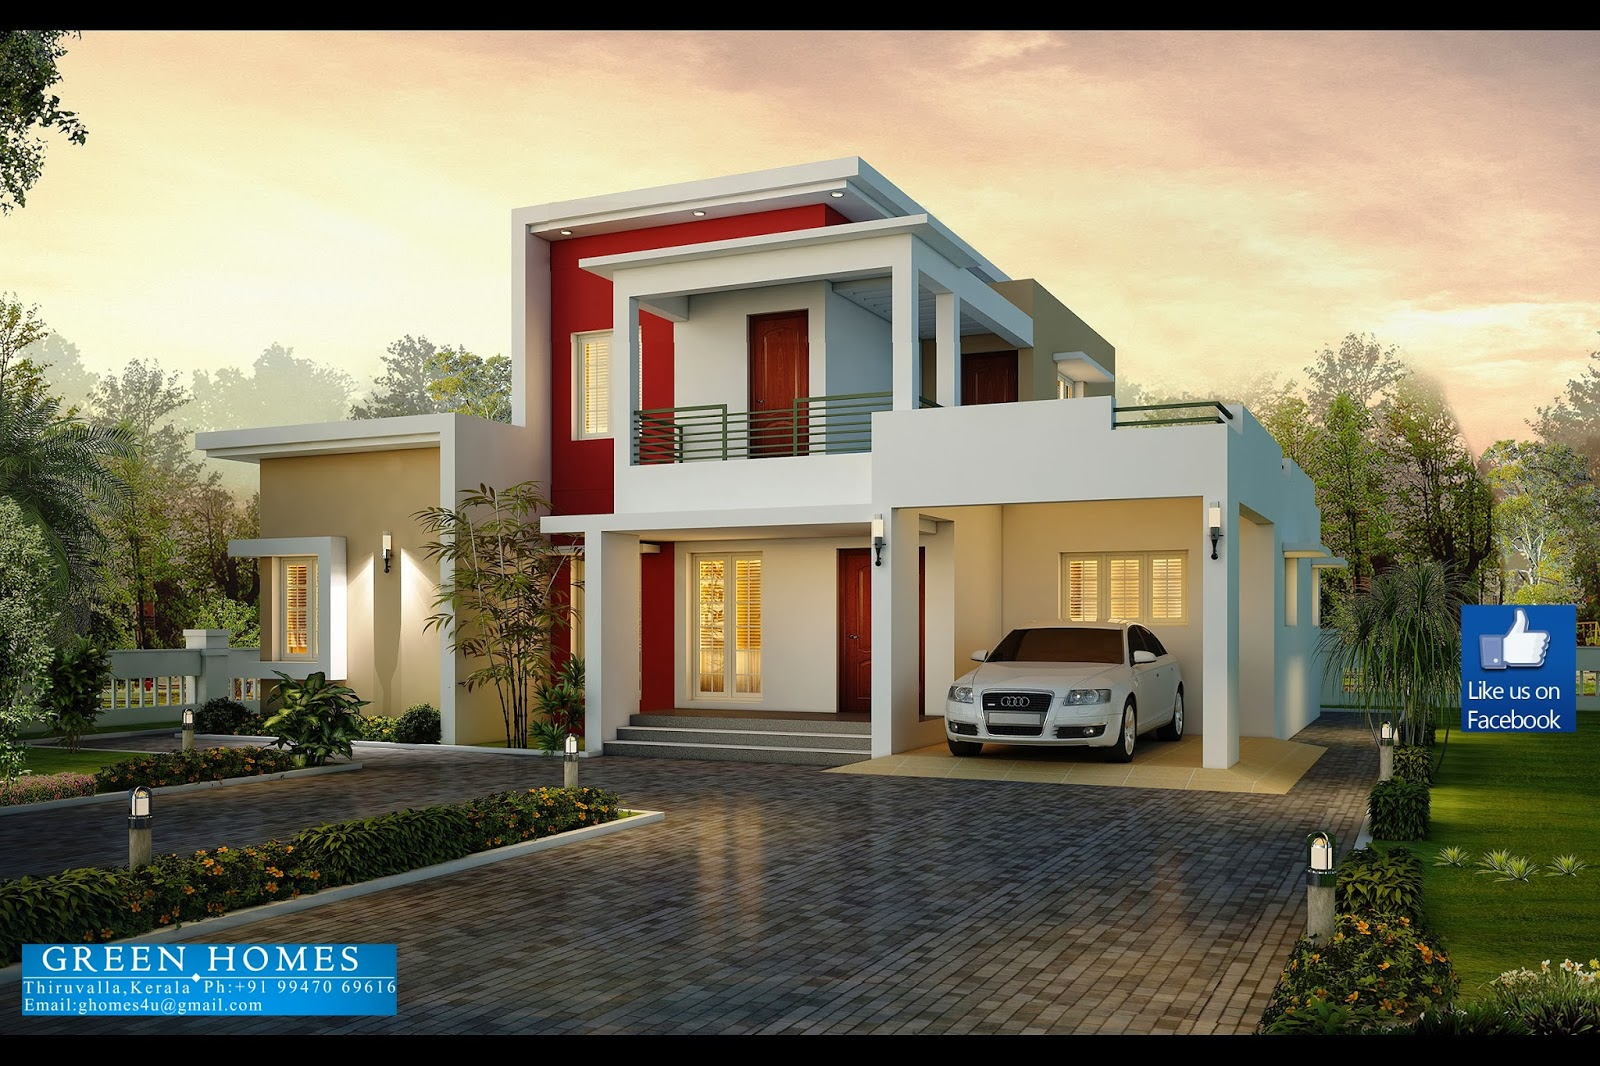 Green homes awesome 3 bedroom modern house design for Awesome modern houses